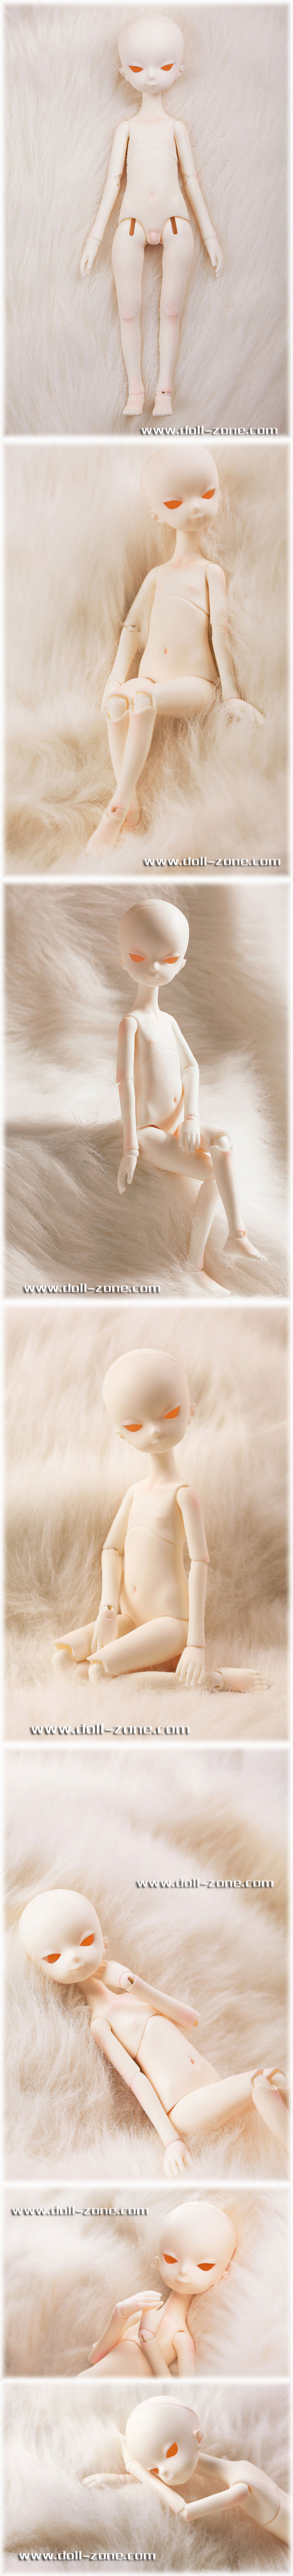 BJD Body B27-001 Young Boy YO-SD Boll-jointed doll